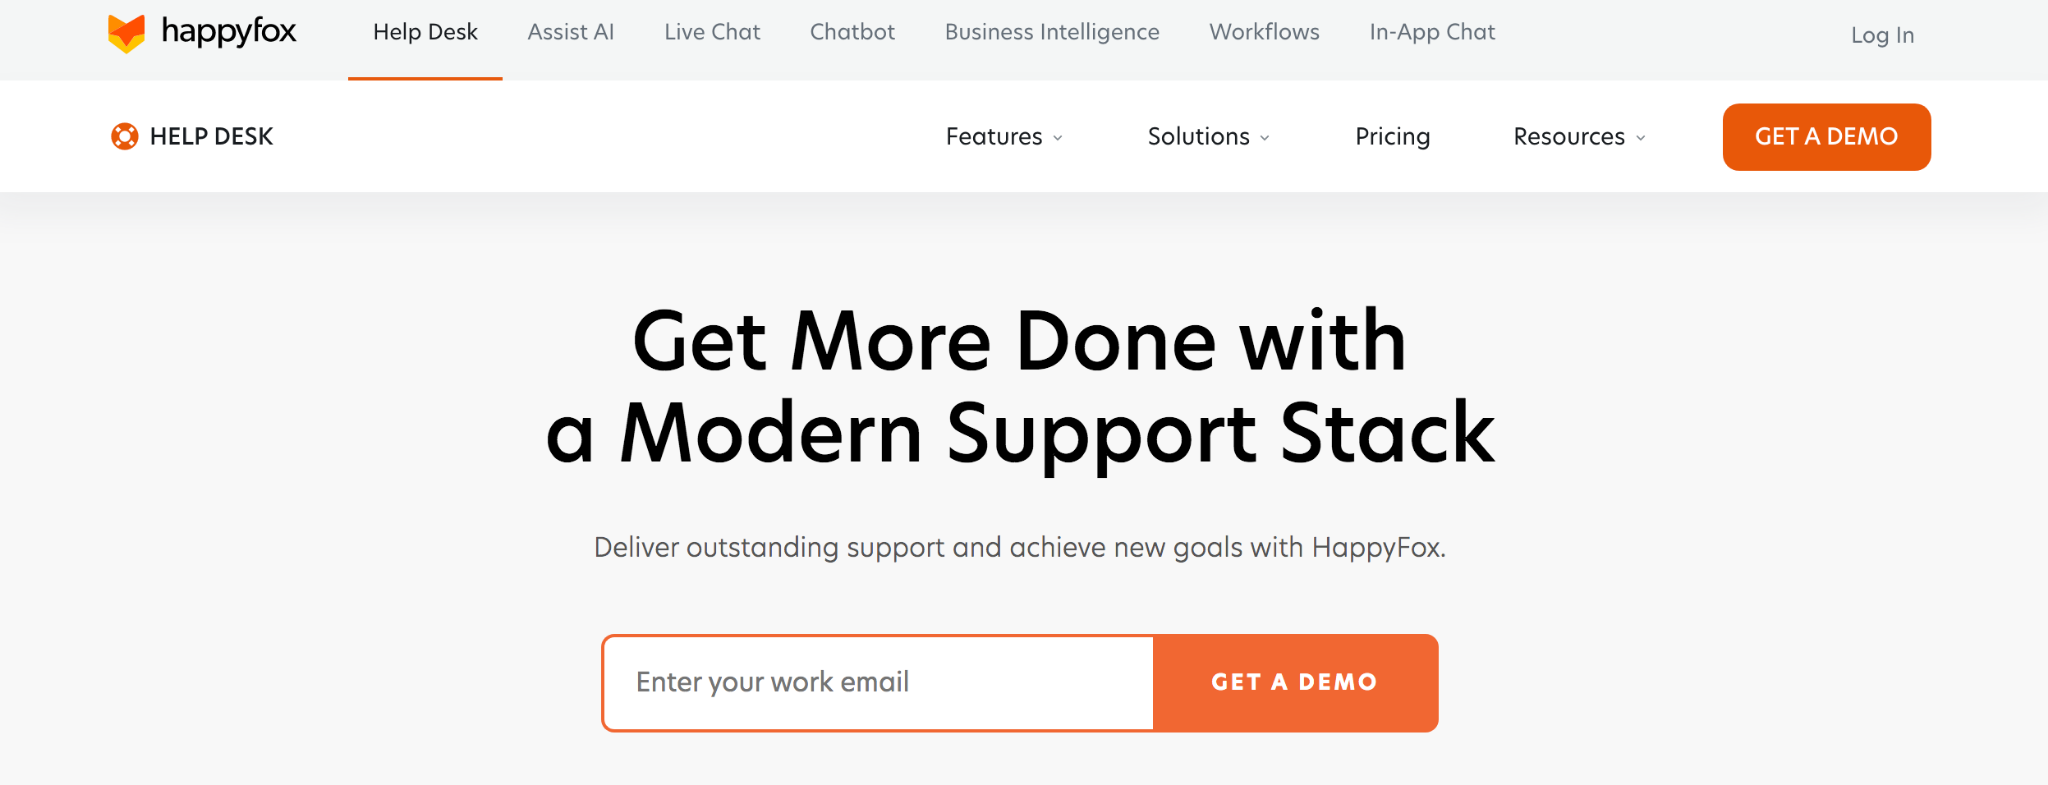 HappyFox homepage: Get More Done with a Modern Support Stack